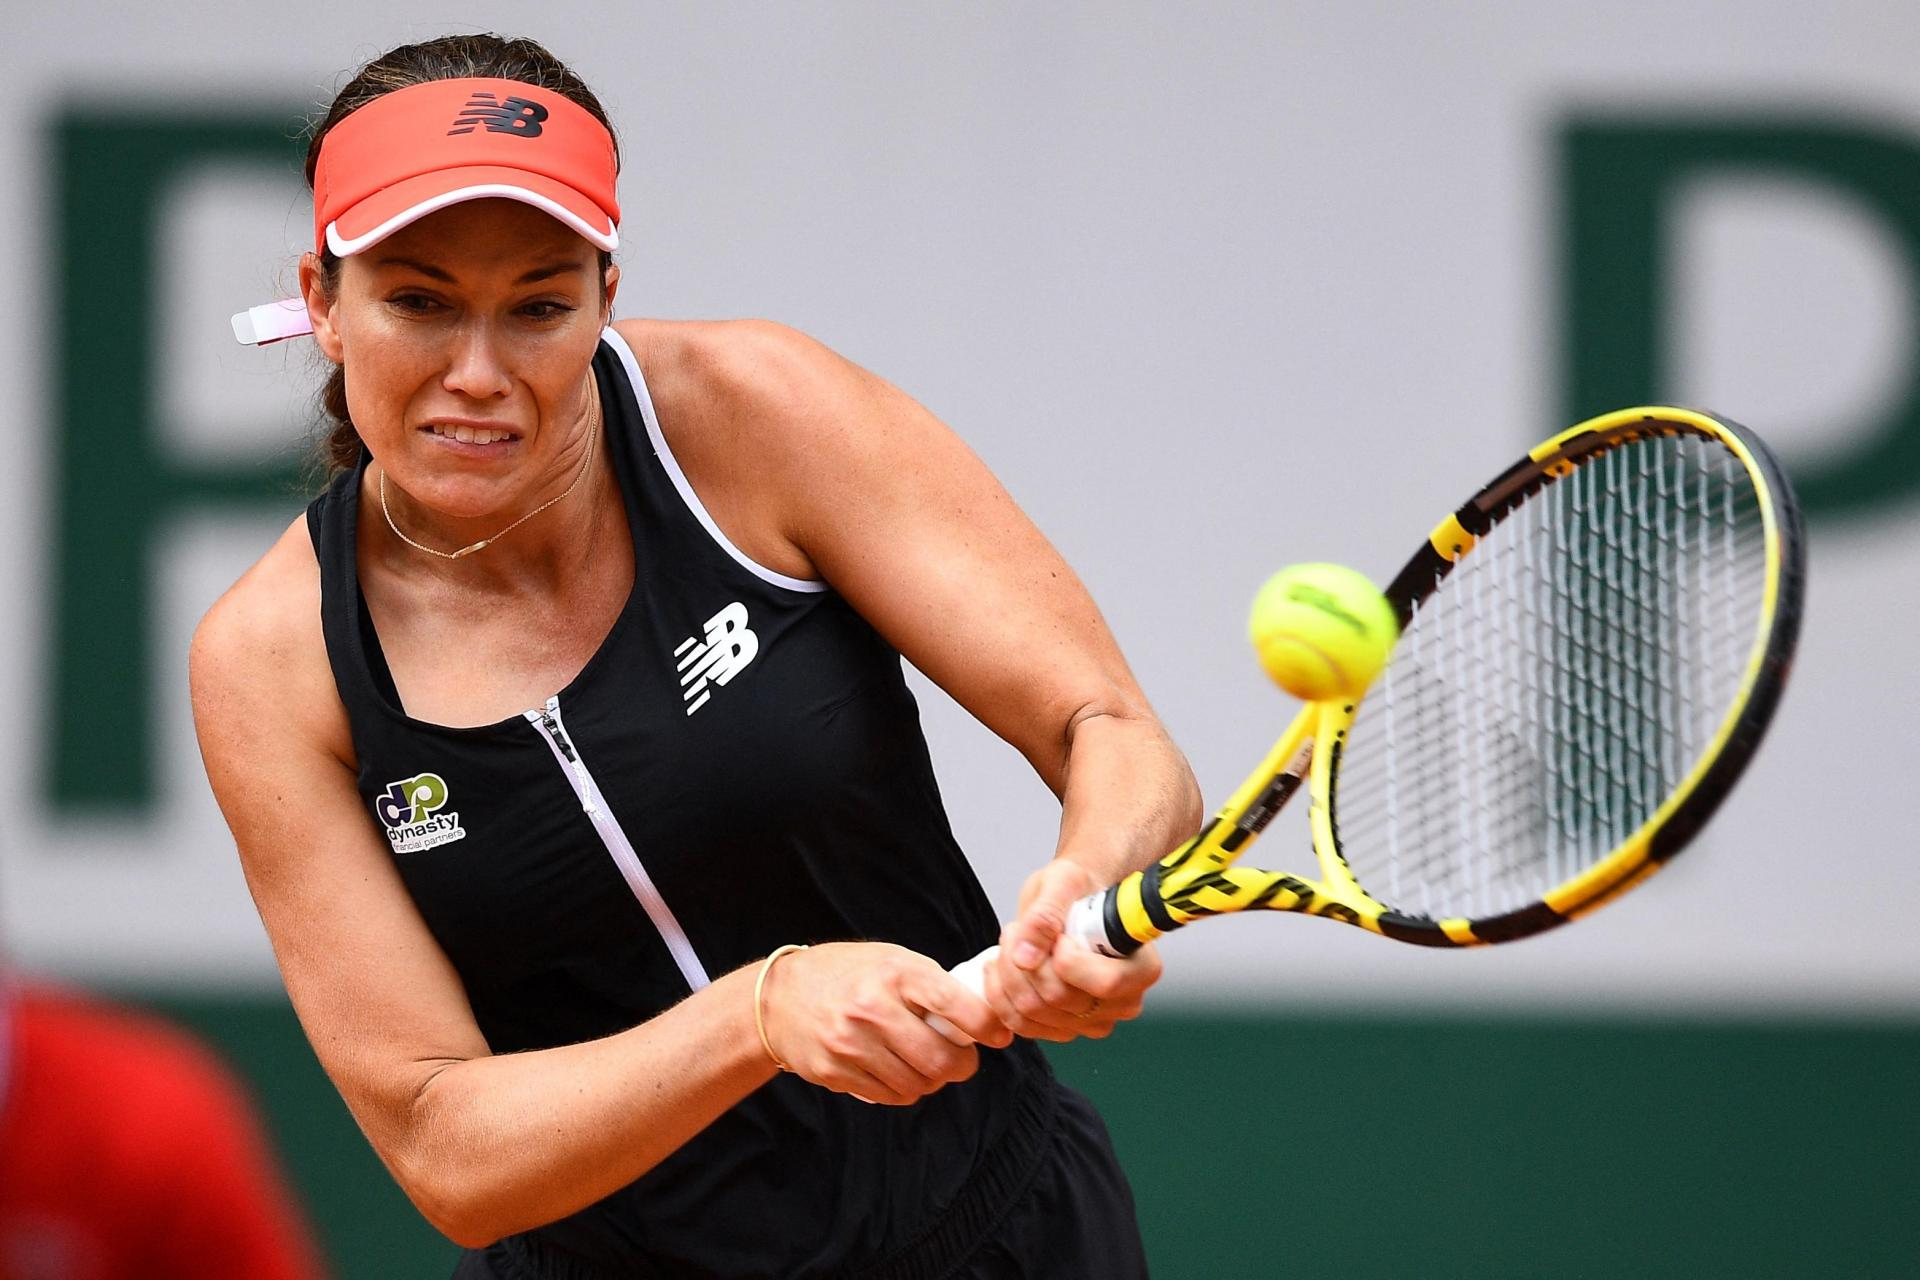 Danielle Collins returns the ball to Serena Williams during their women's singles third round tennis match on Day 6 of The Roland Garros 2021 French Open tennis tournament in Paris on June 4, 2021. Photo: Christophe Archambault/AFP